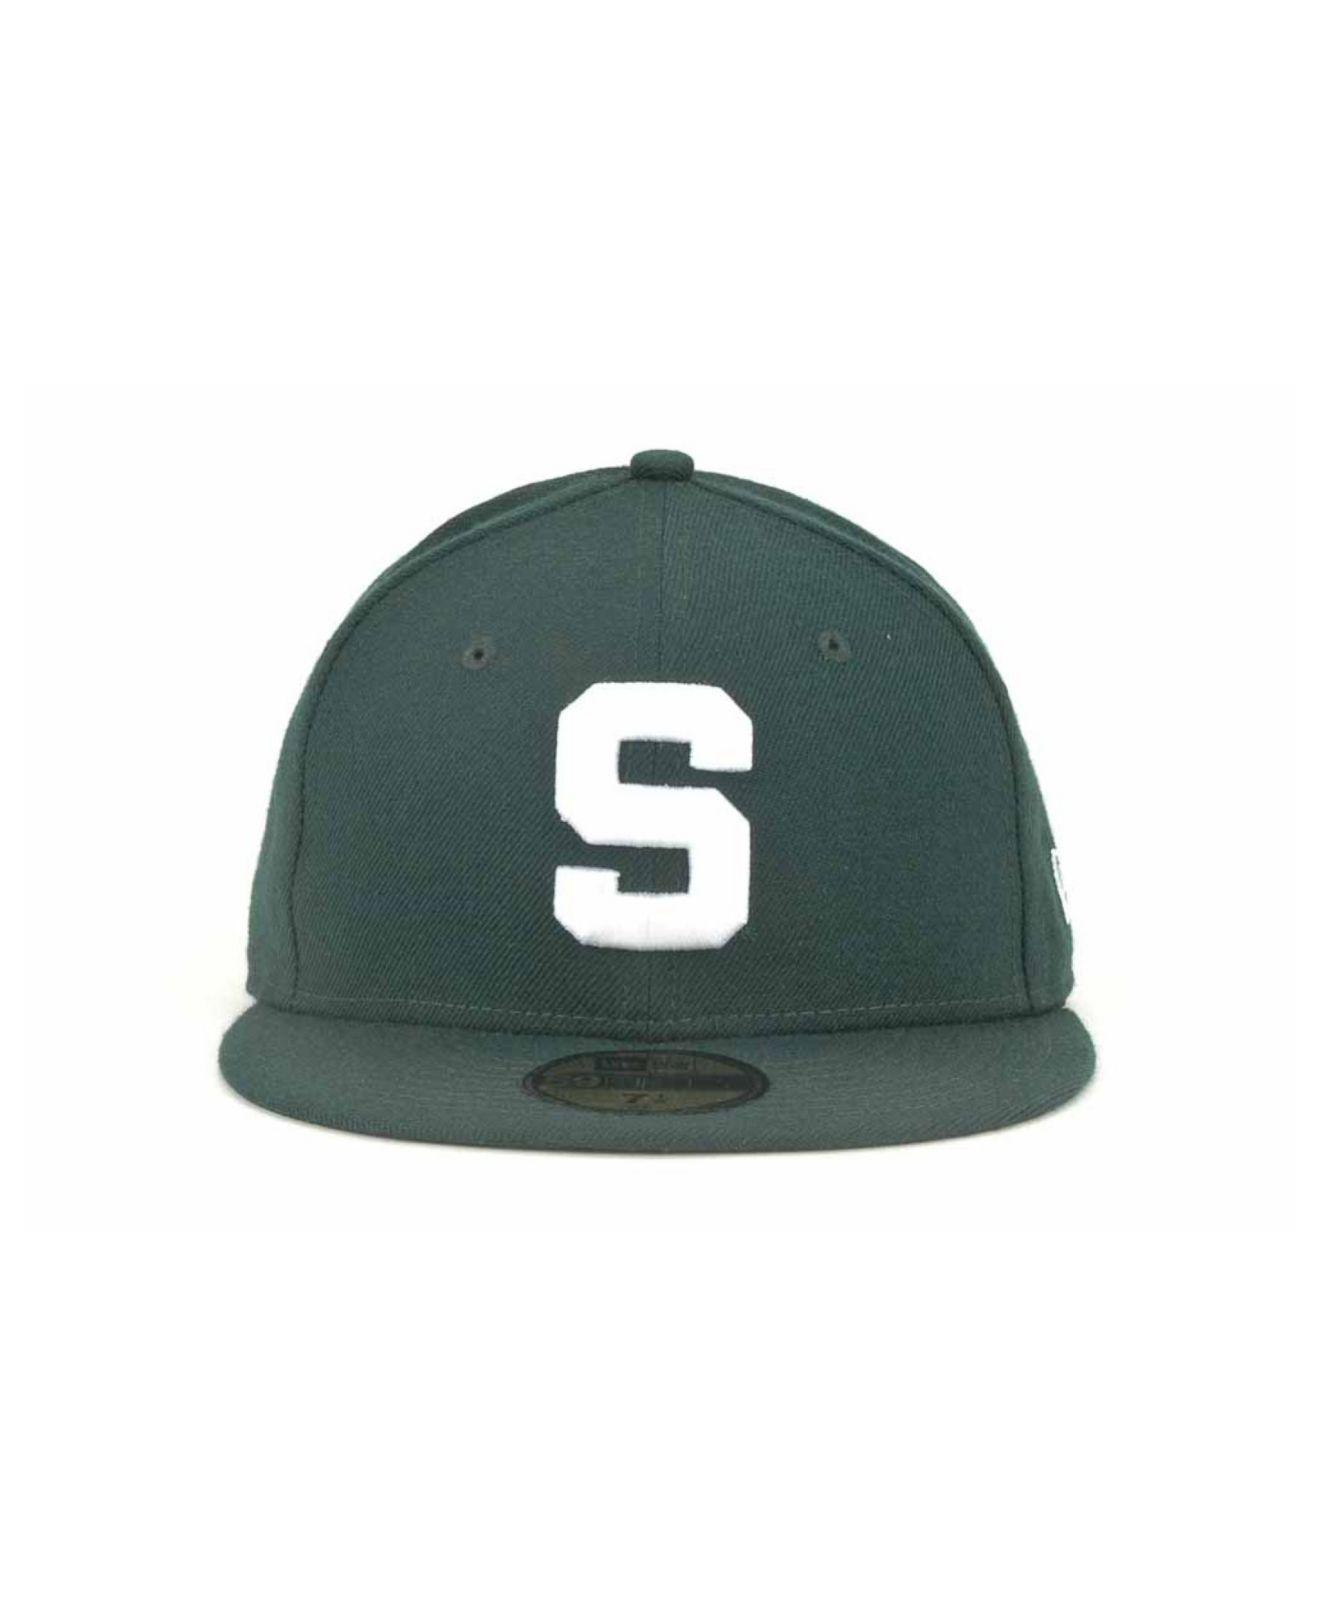 online store bd949 9479e sweden lyst ktz michigan state spartans 59fifty cap in green for men 9a70c  9abbd